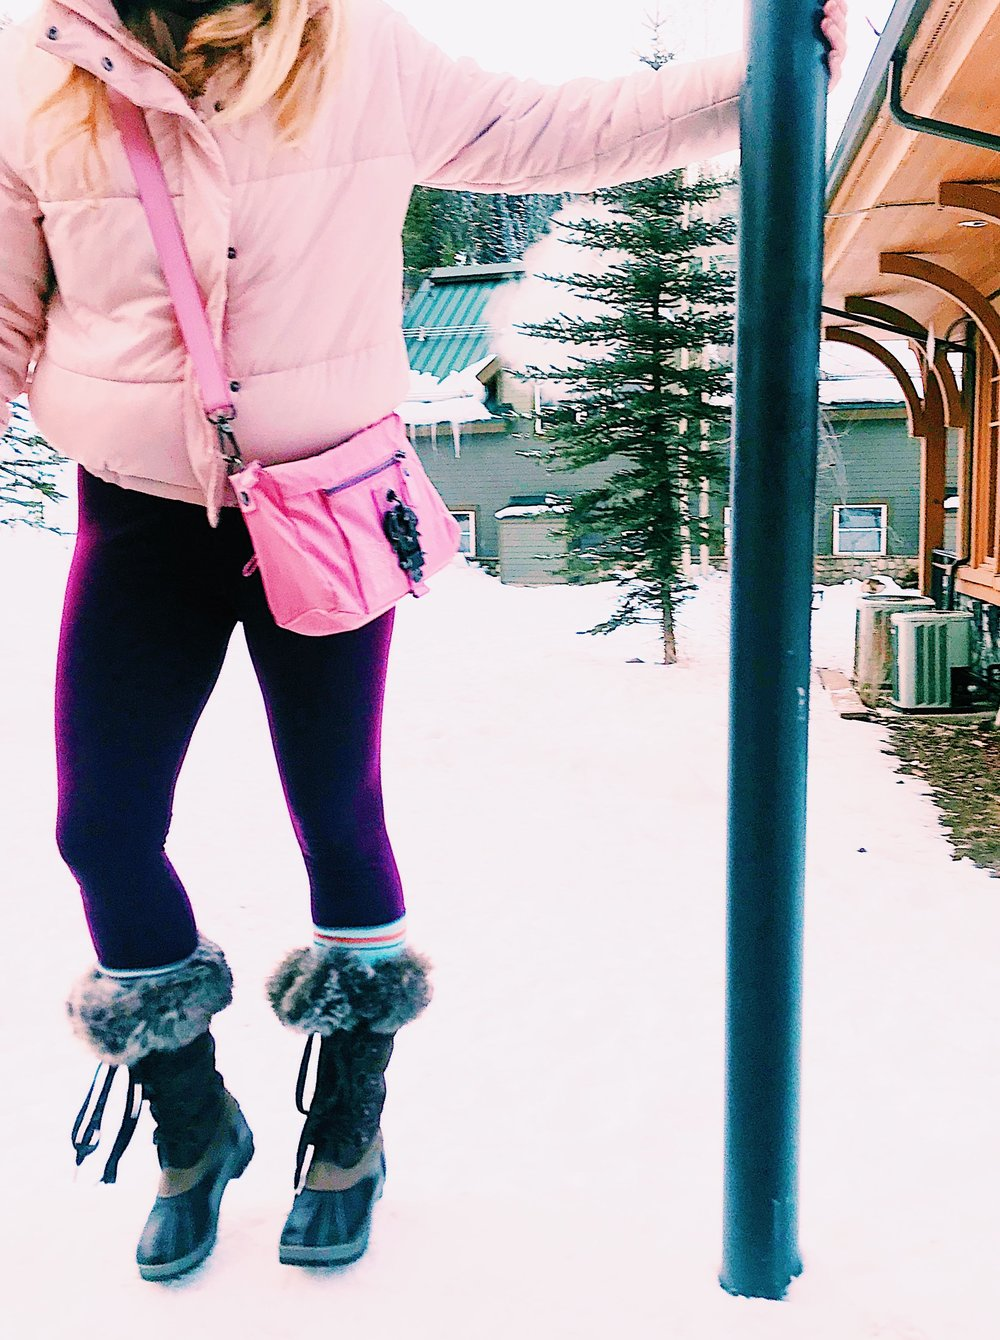 Three Heel Clicks - Winter Park Colorado (6).jpg